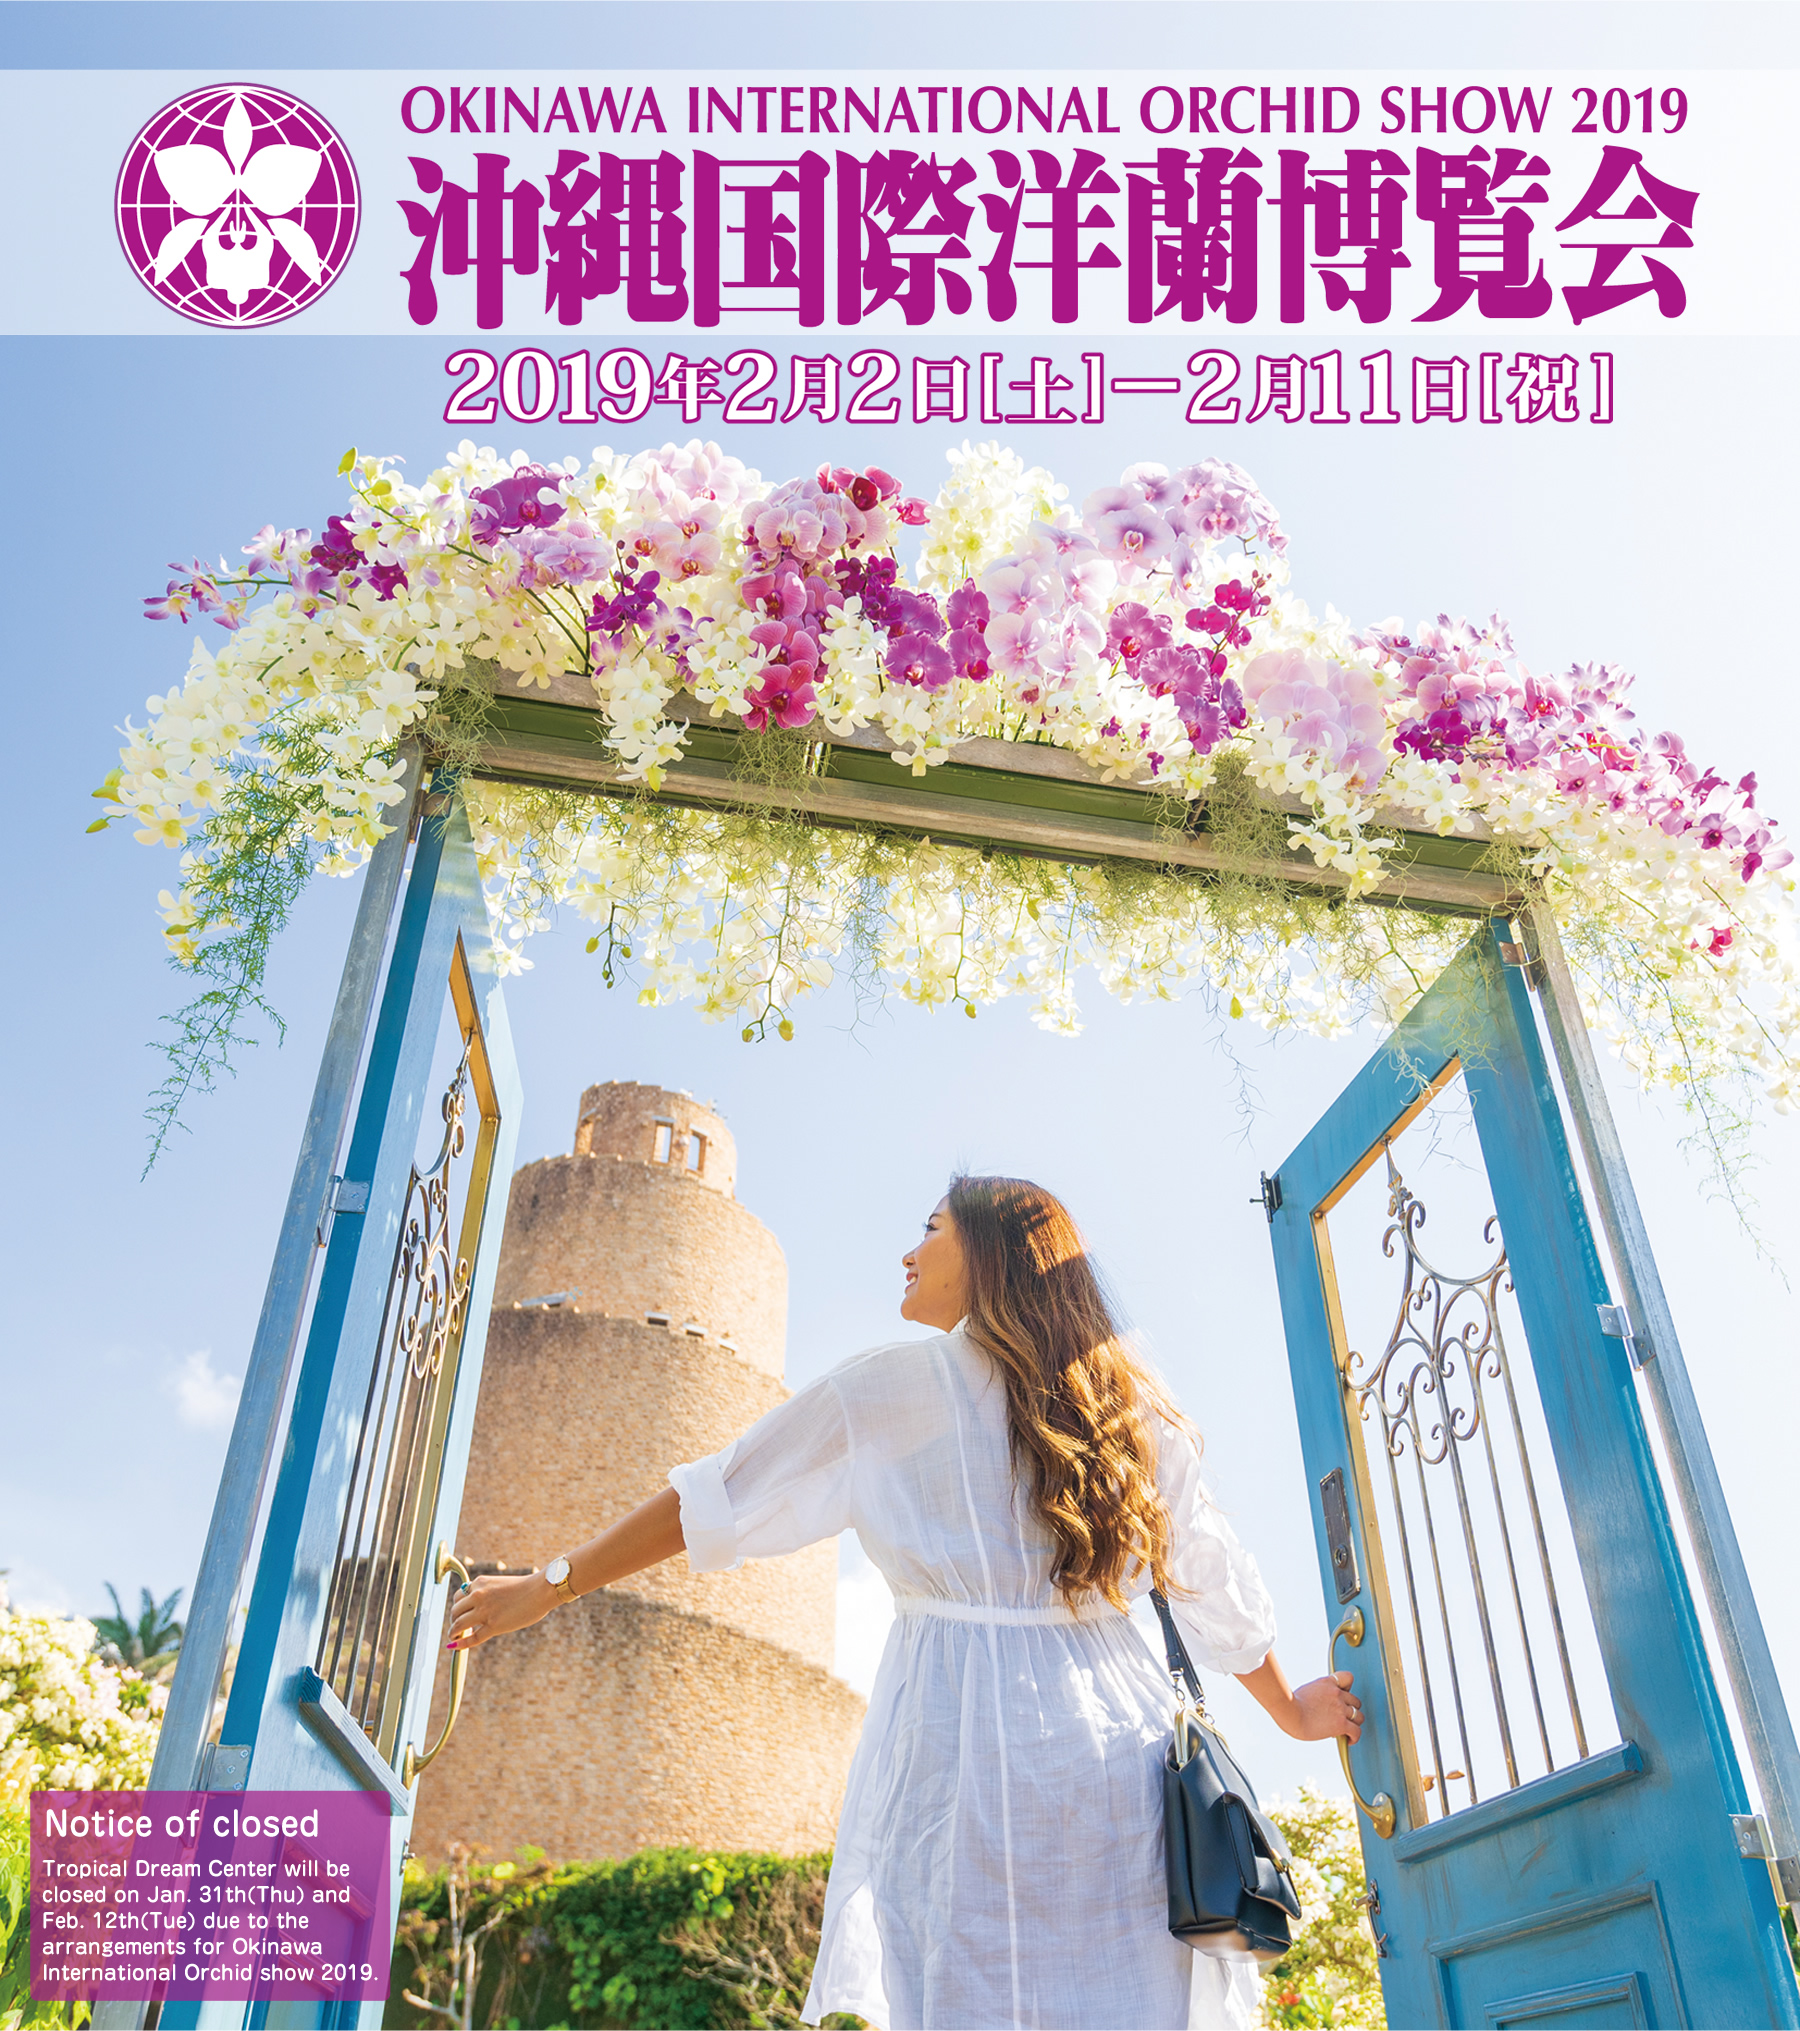 3 February(Sat) - 12 February(Mon) Flower Island Okinawa - A Collaboration Between Orchids and the Flowers of Okinawa